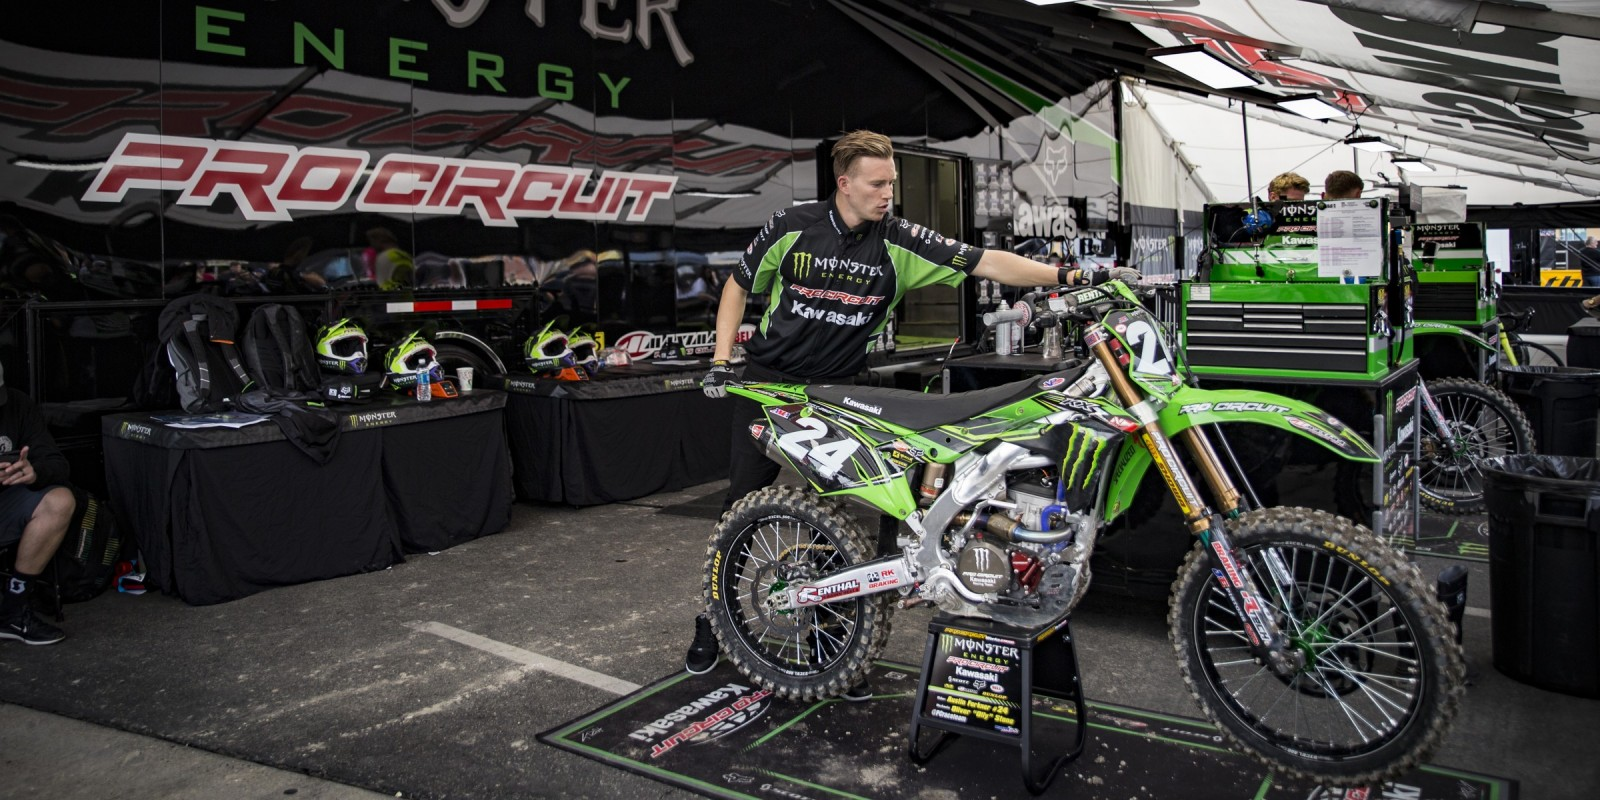 Monster Pro Circuit pits at the 2017 AMA Supercross opening at Anaheim Stop 1